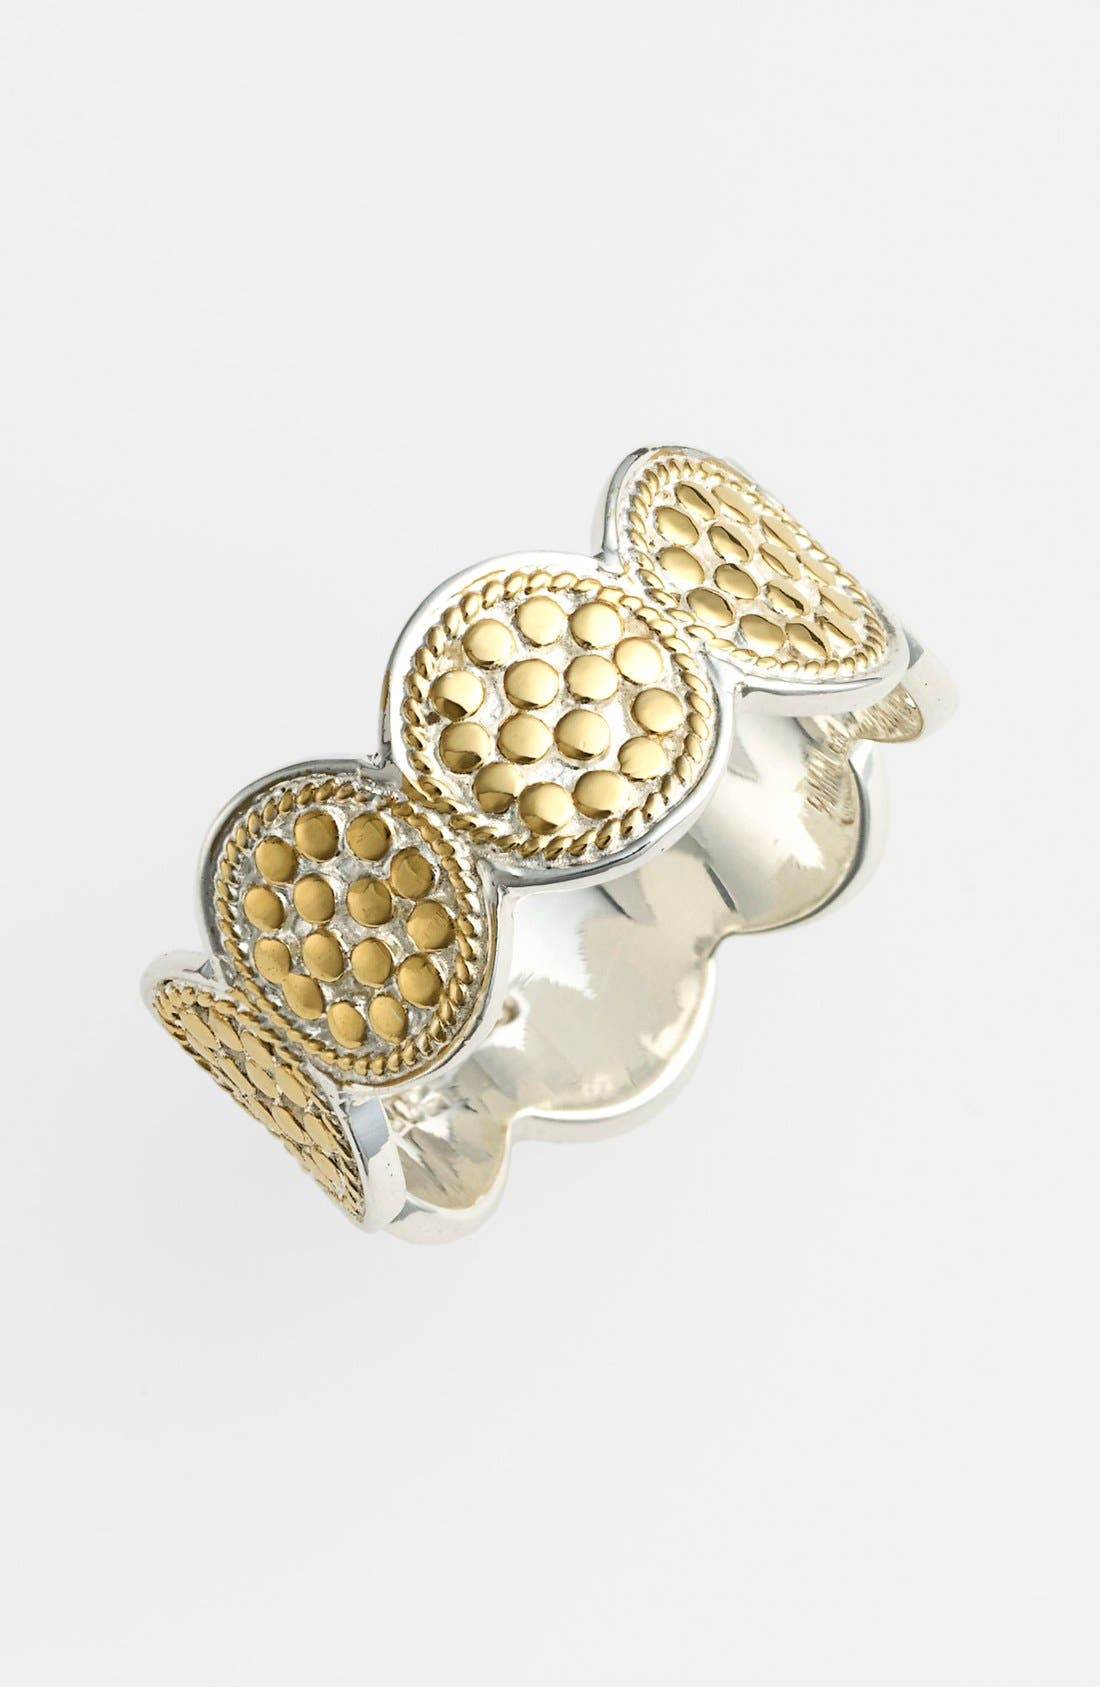 Main Image - Anna Beck 'Gili' Wire Rimmed Disc Band Ring